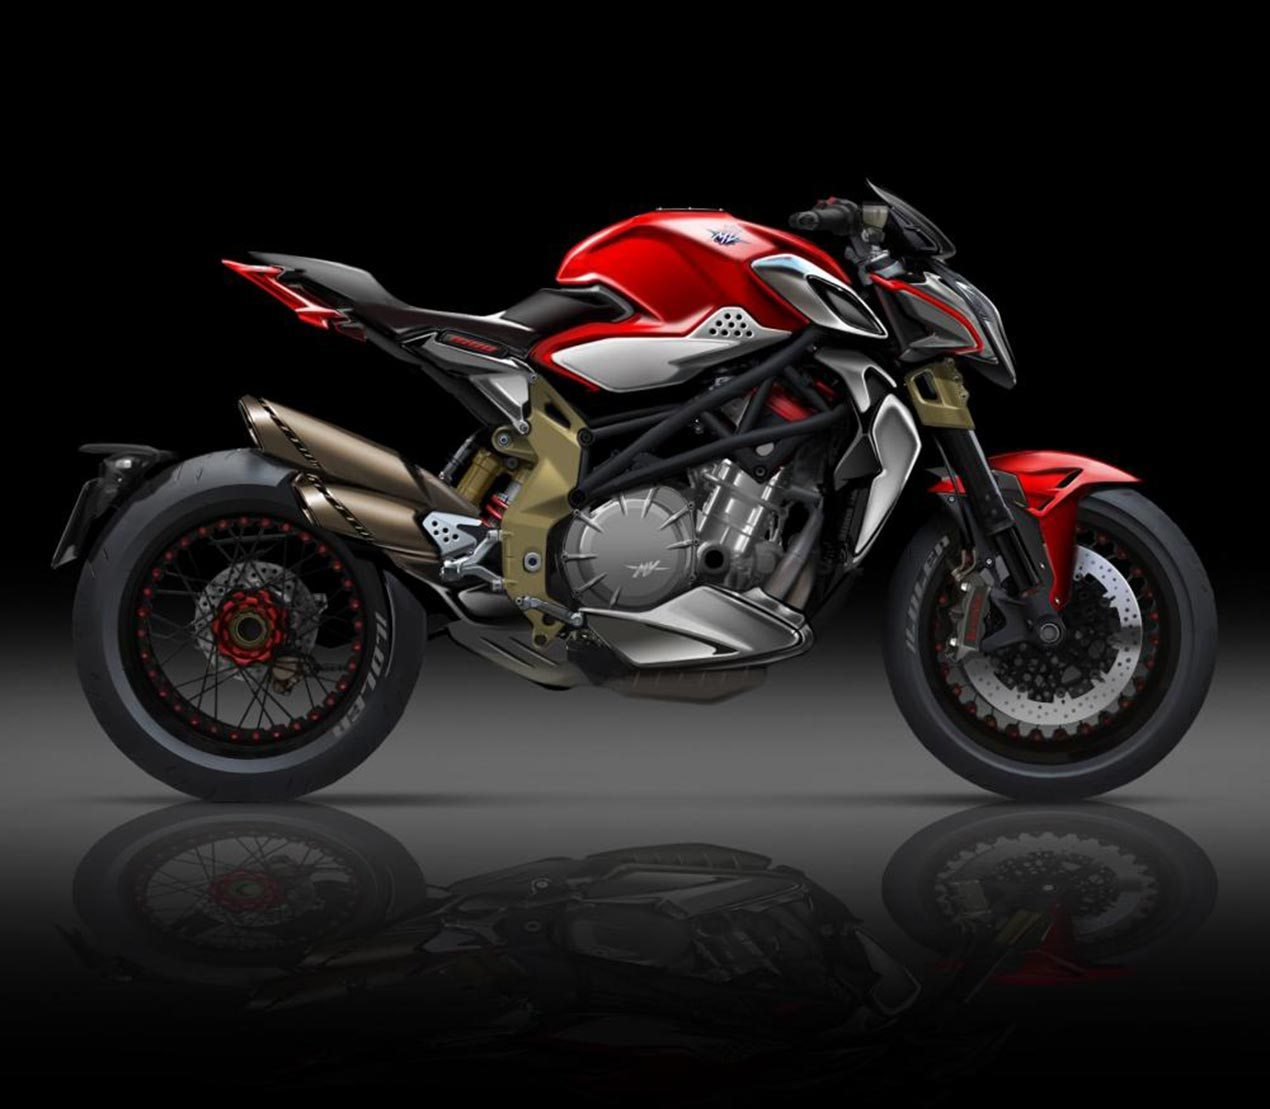 new mv agusta brutale with four cylinder engine coming soon bikesrepublic. Black Bedroom Furniture Sets. Home Design Ideas